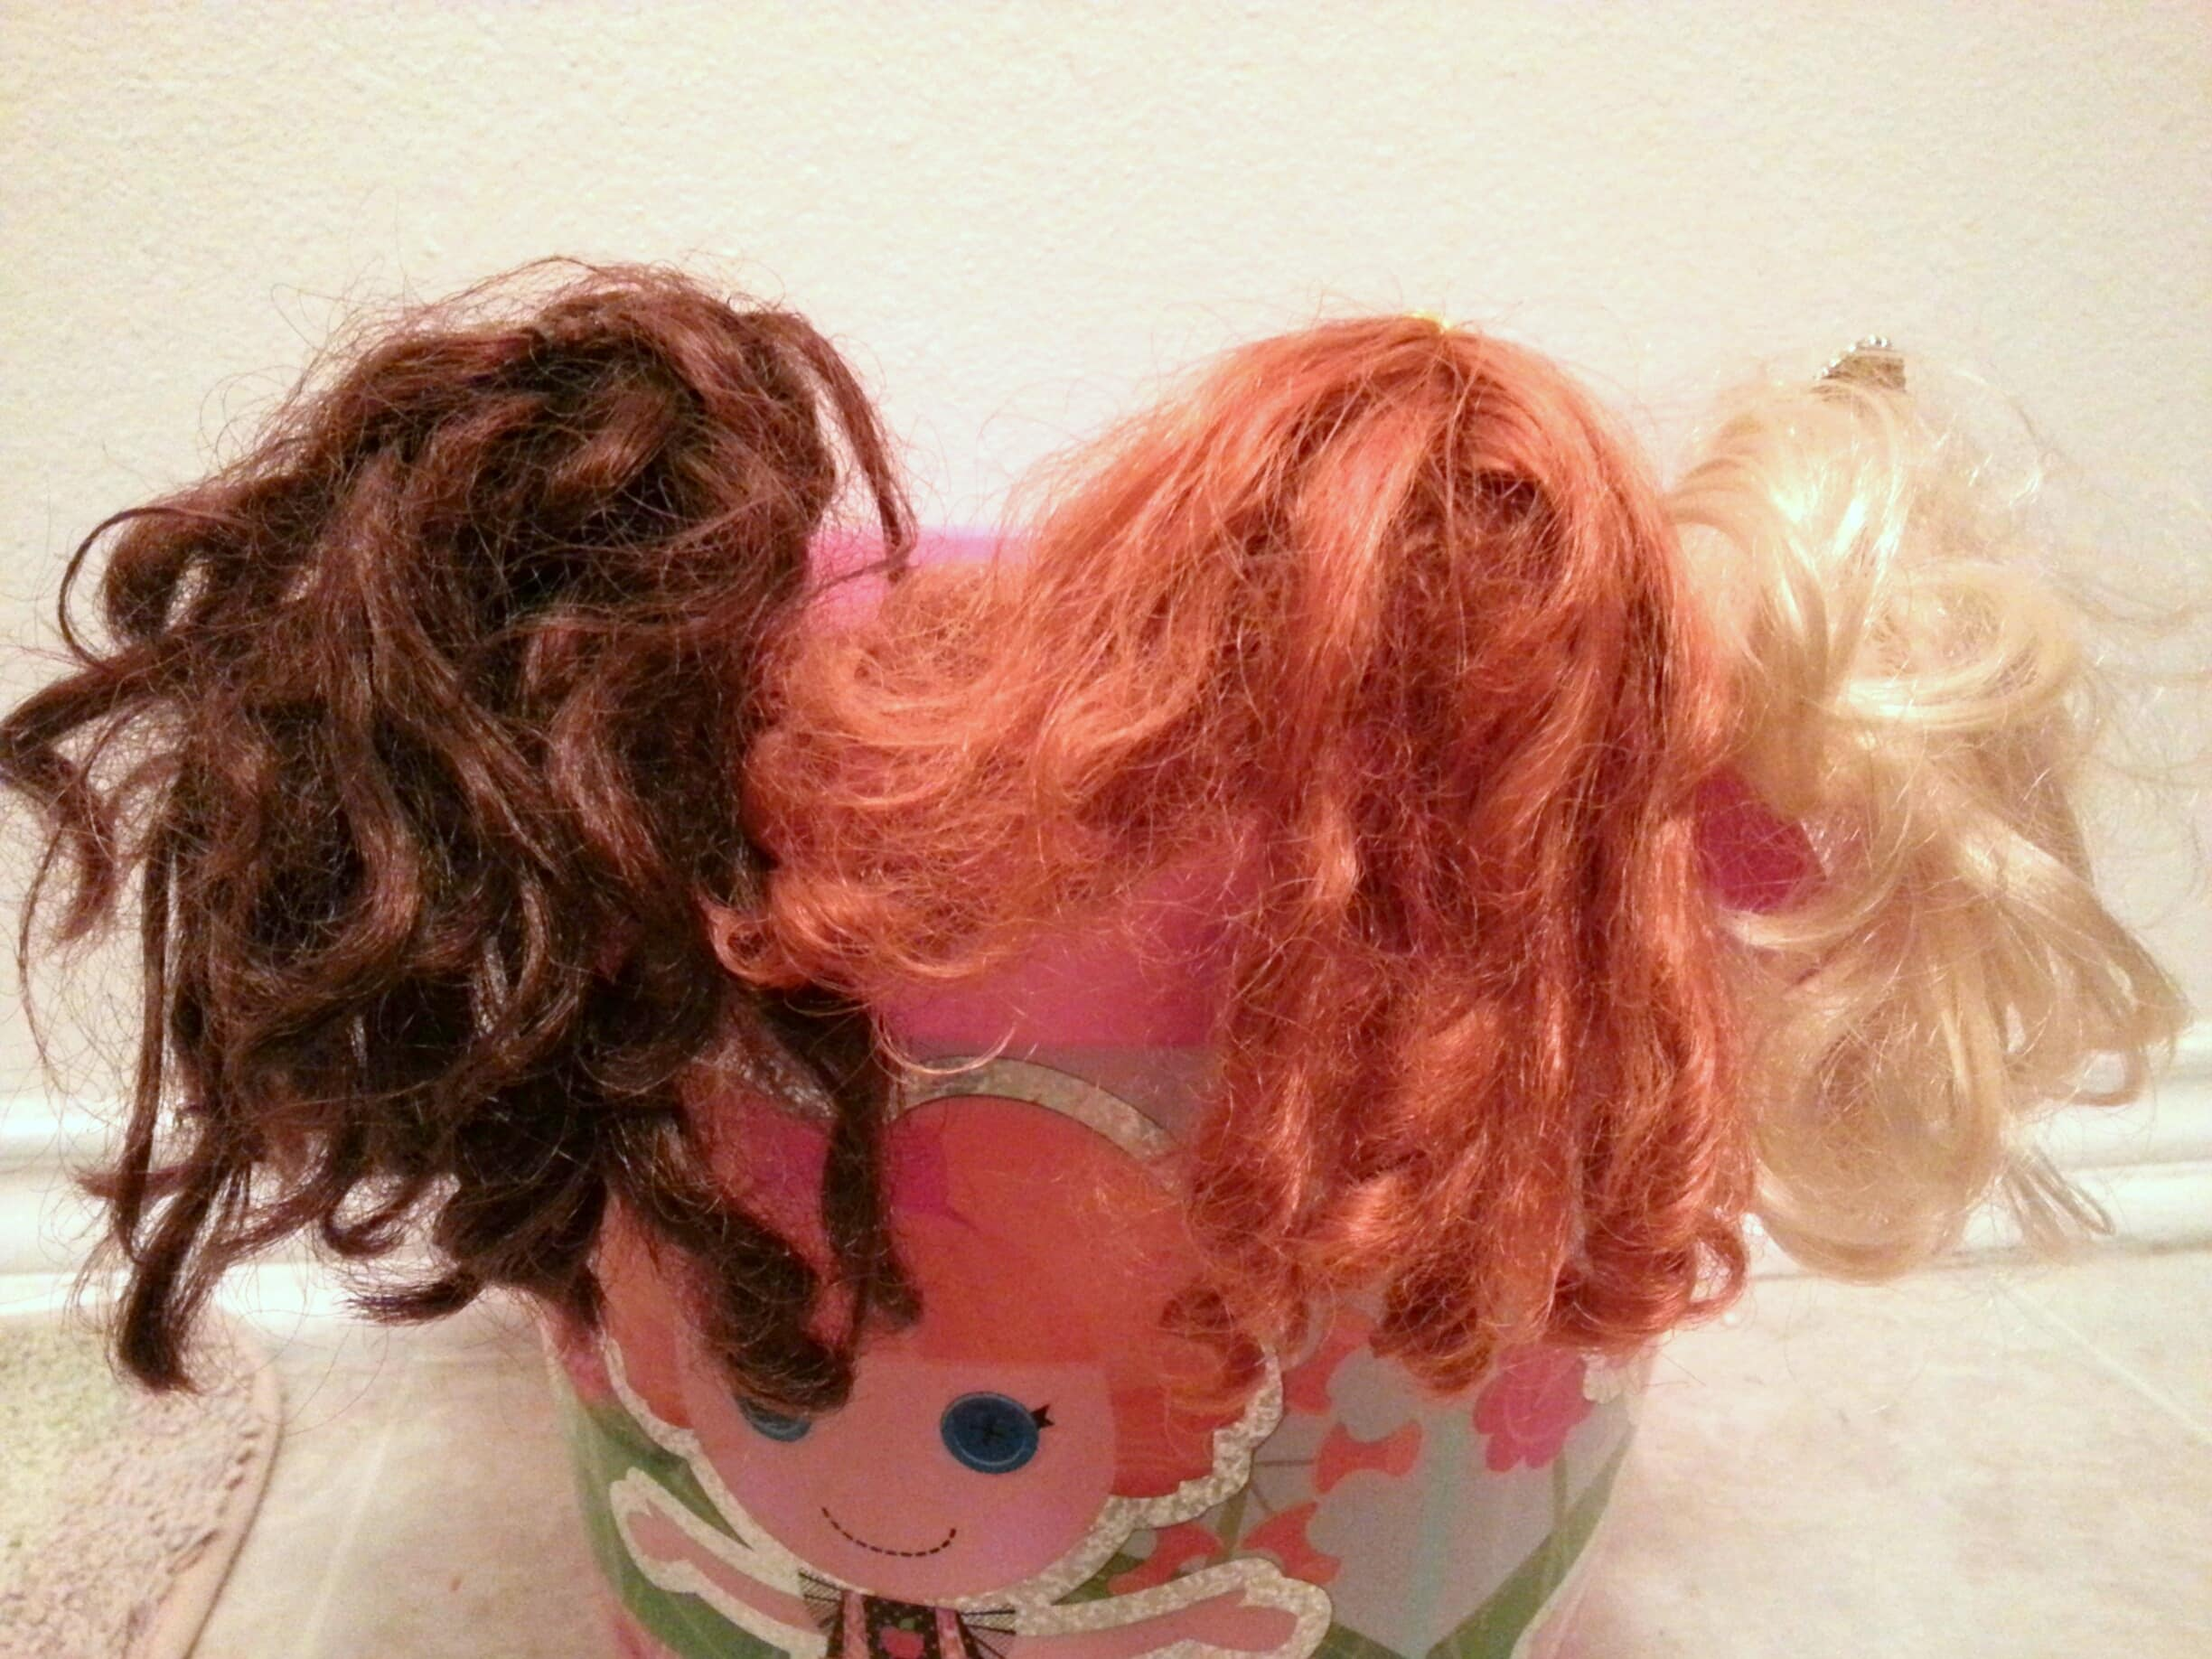 How To Untangle Matted Hair On A Doll Best Hack Ever